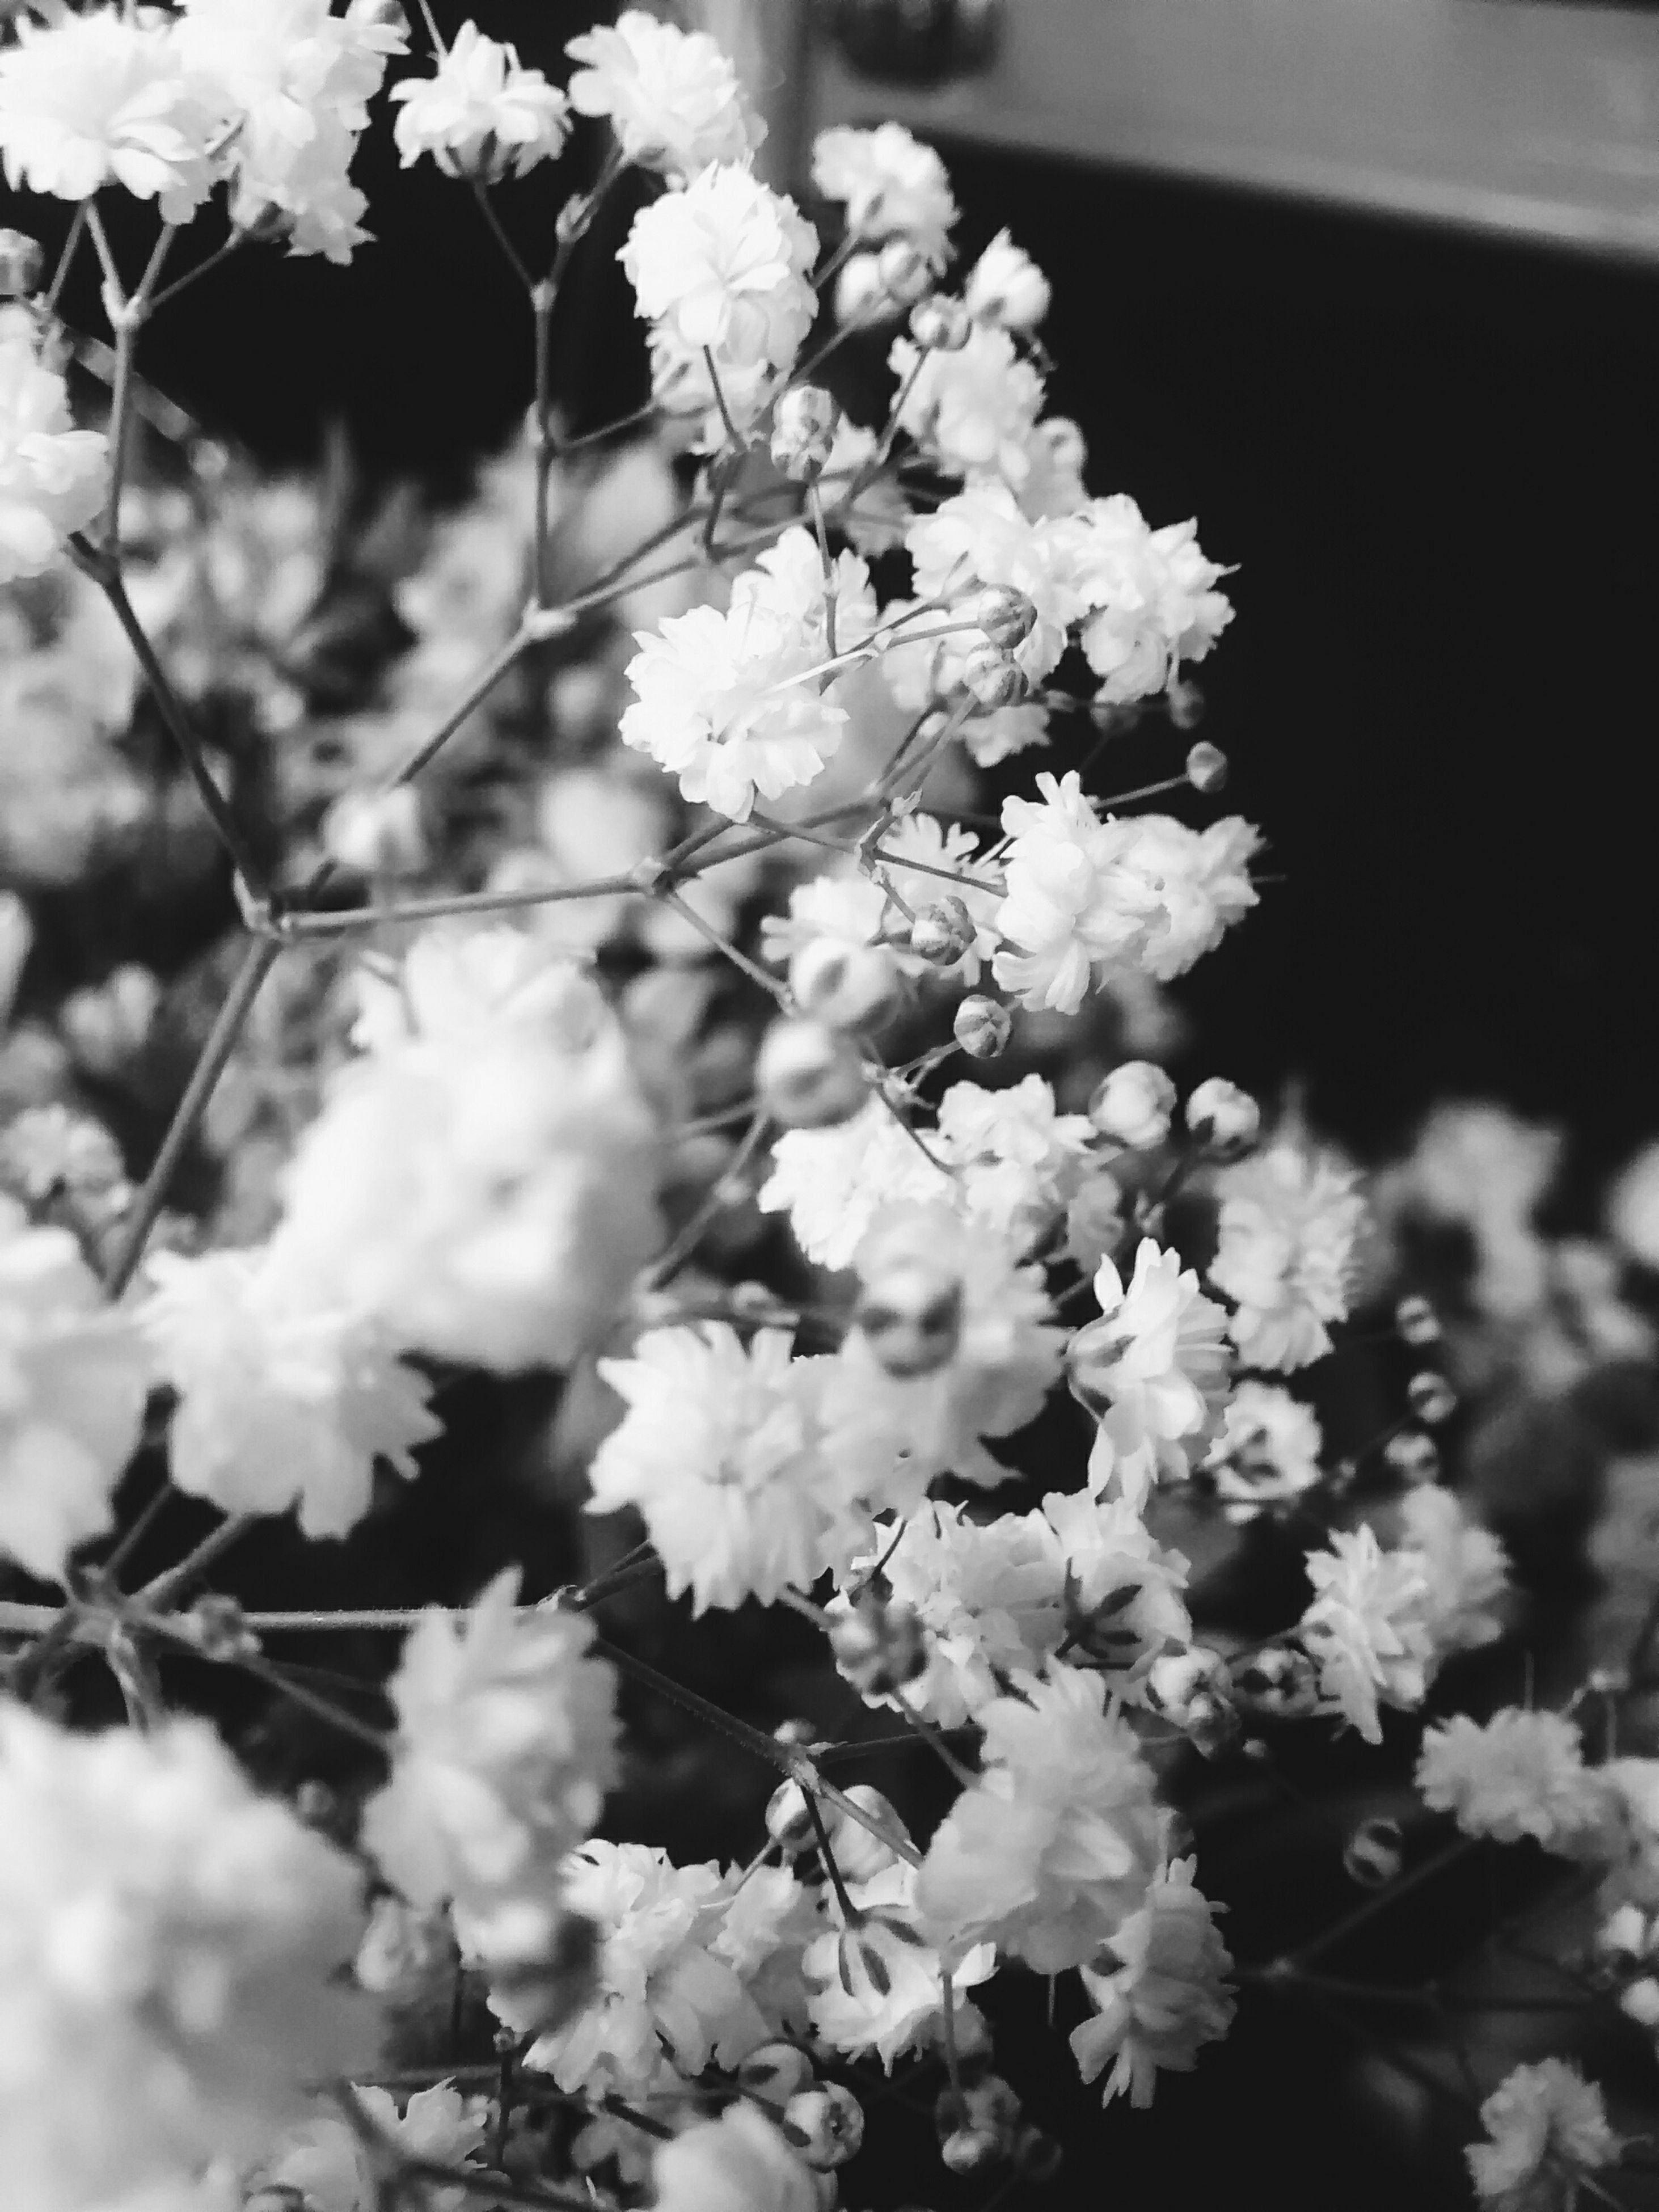 flower, freshness, growth, fragility, focus on foreground, beauty in nature, nature, petal, close-up, plant, blooming, branch, white color, blossom, outdoors, in bloom, day, tree, selective focus, no people